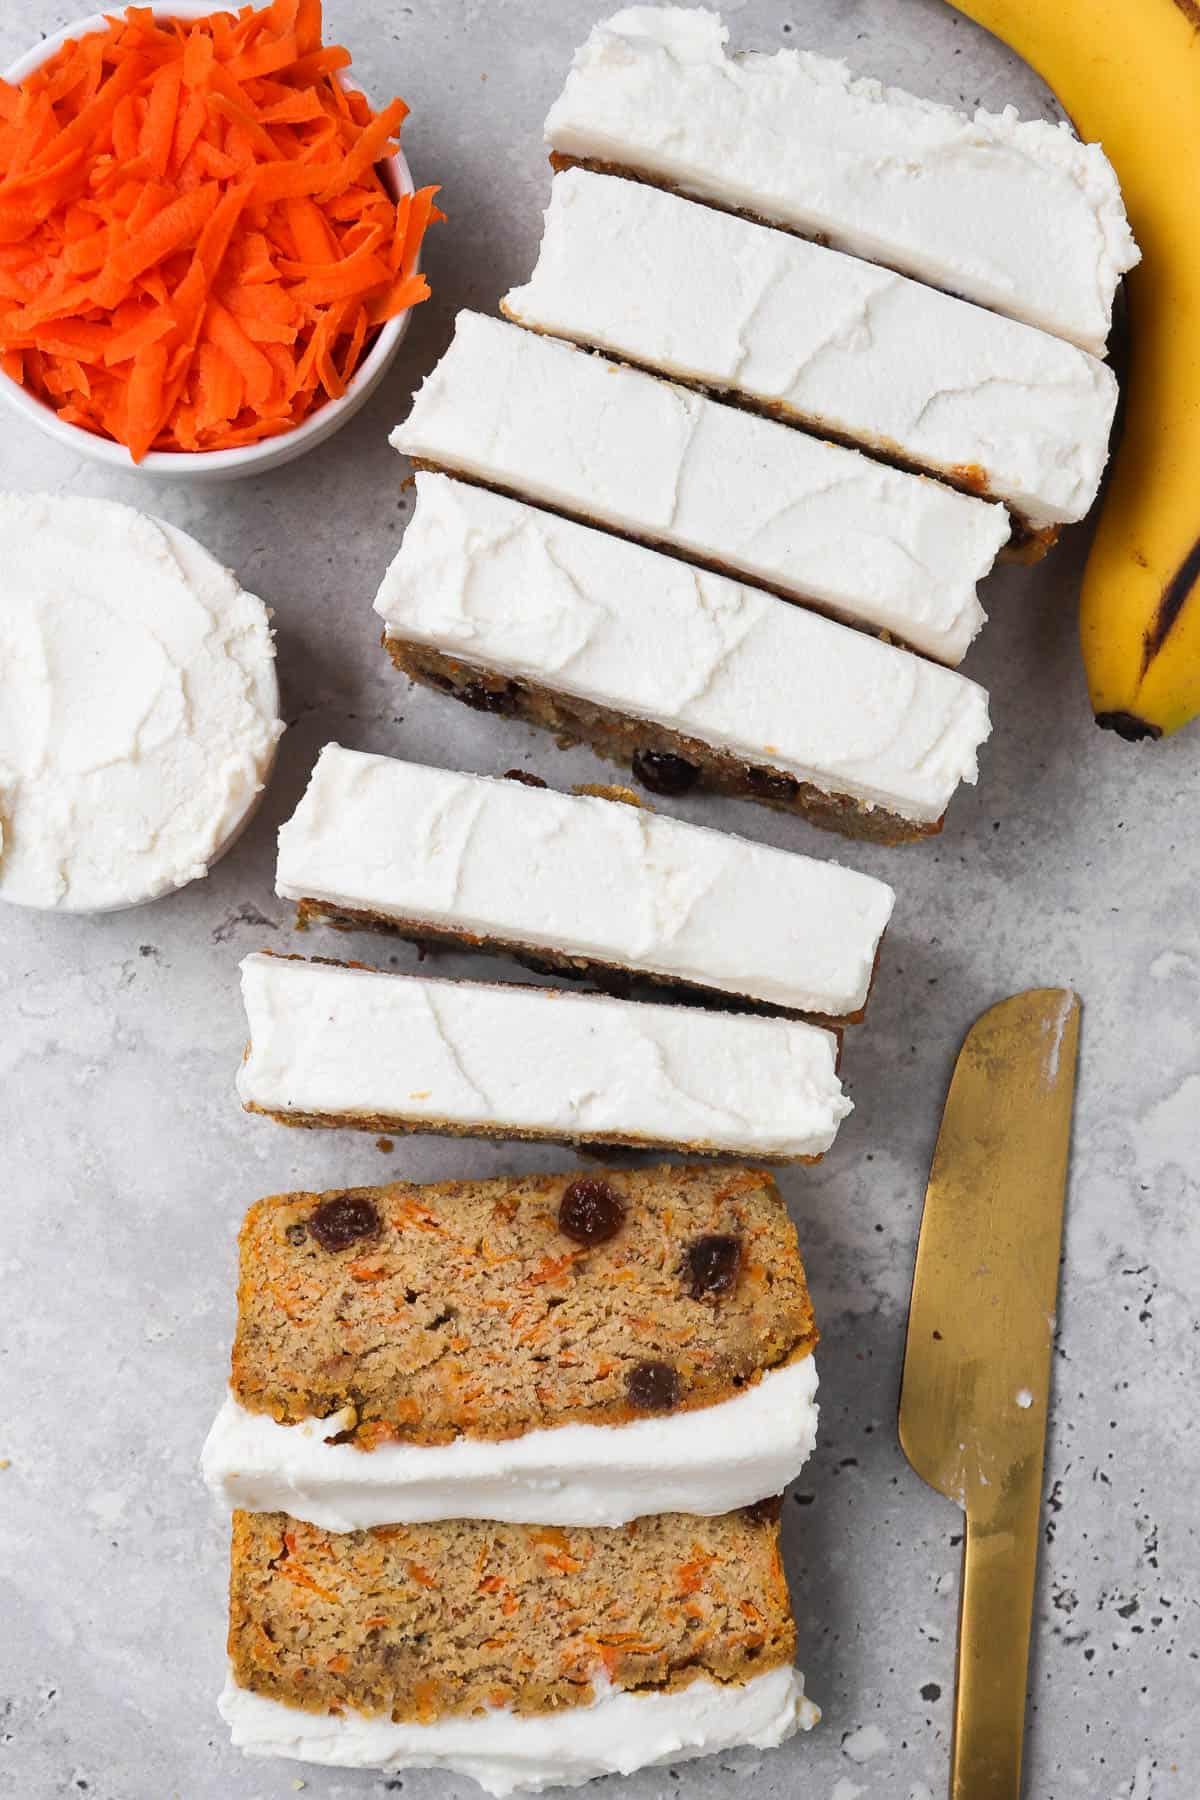 Sliced up frosted bread with frosting, carrot, banana and gold knife on the side for garnish.